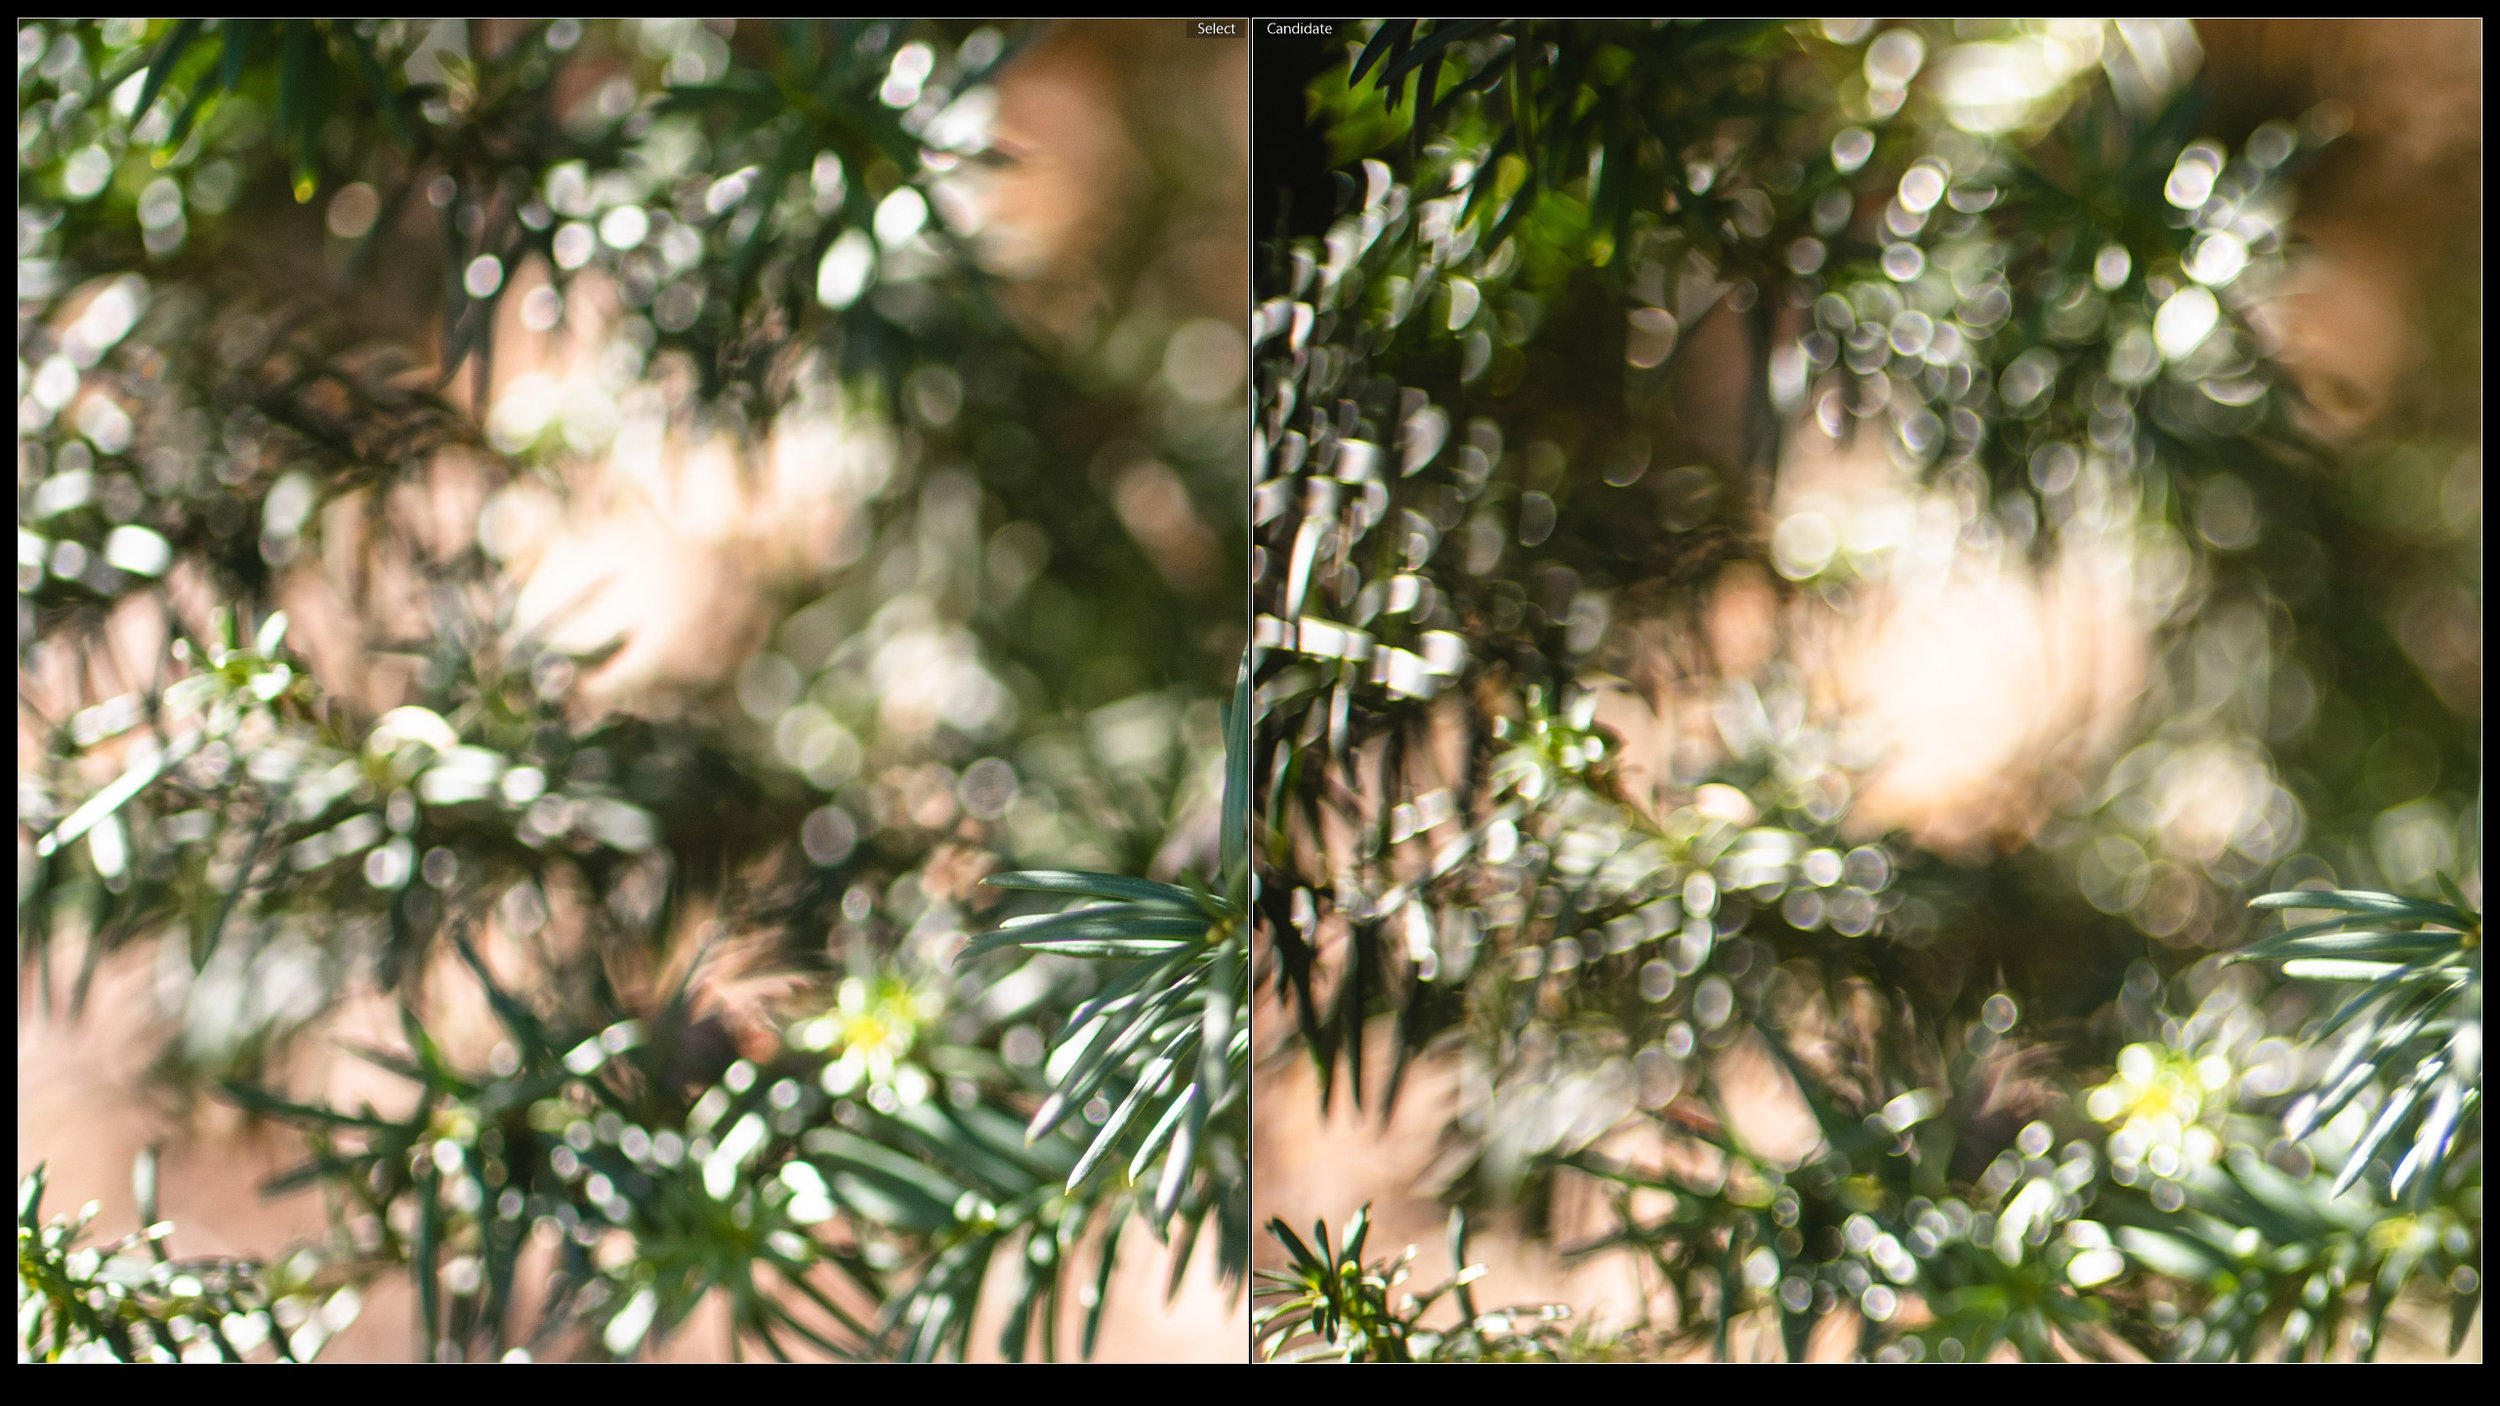 Despite slight onioning, Tamron 45VC (left) is still cleaner and smoother than the harsh soap bubble bokeh of the Nikkor AF 50mm 1.4D (right)